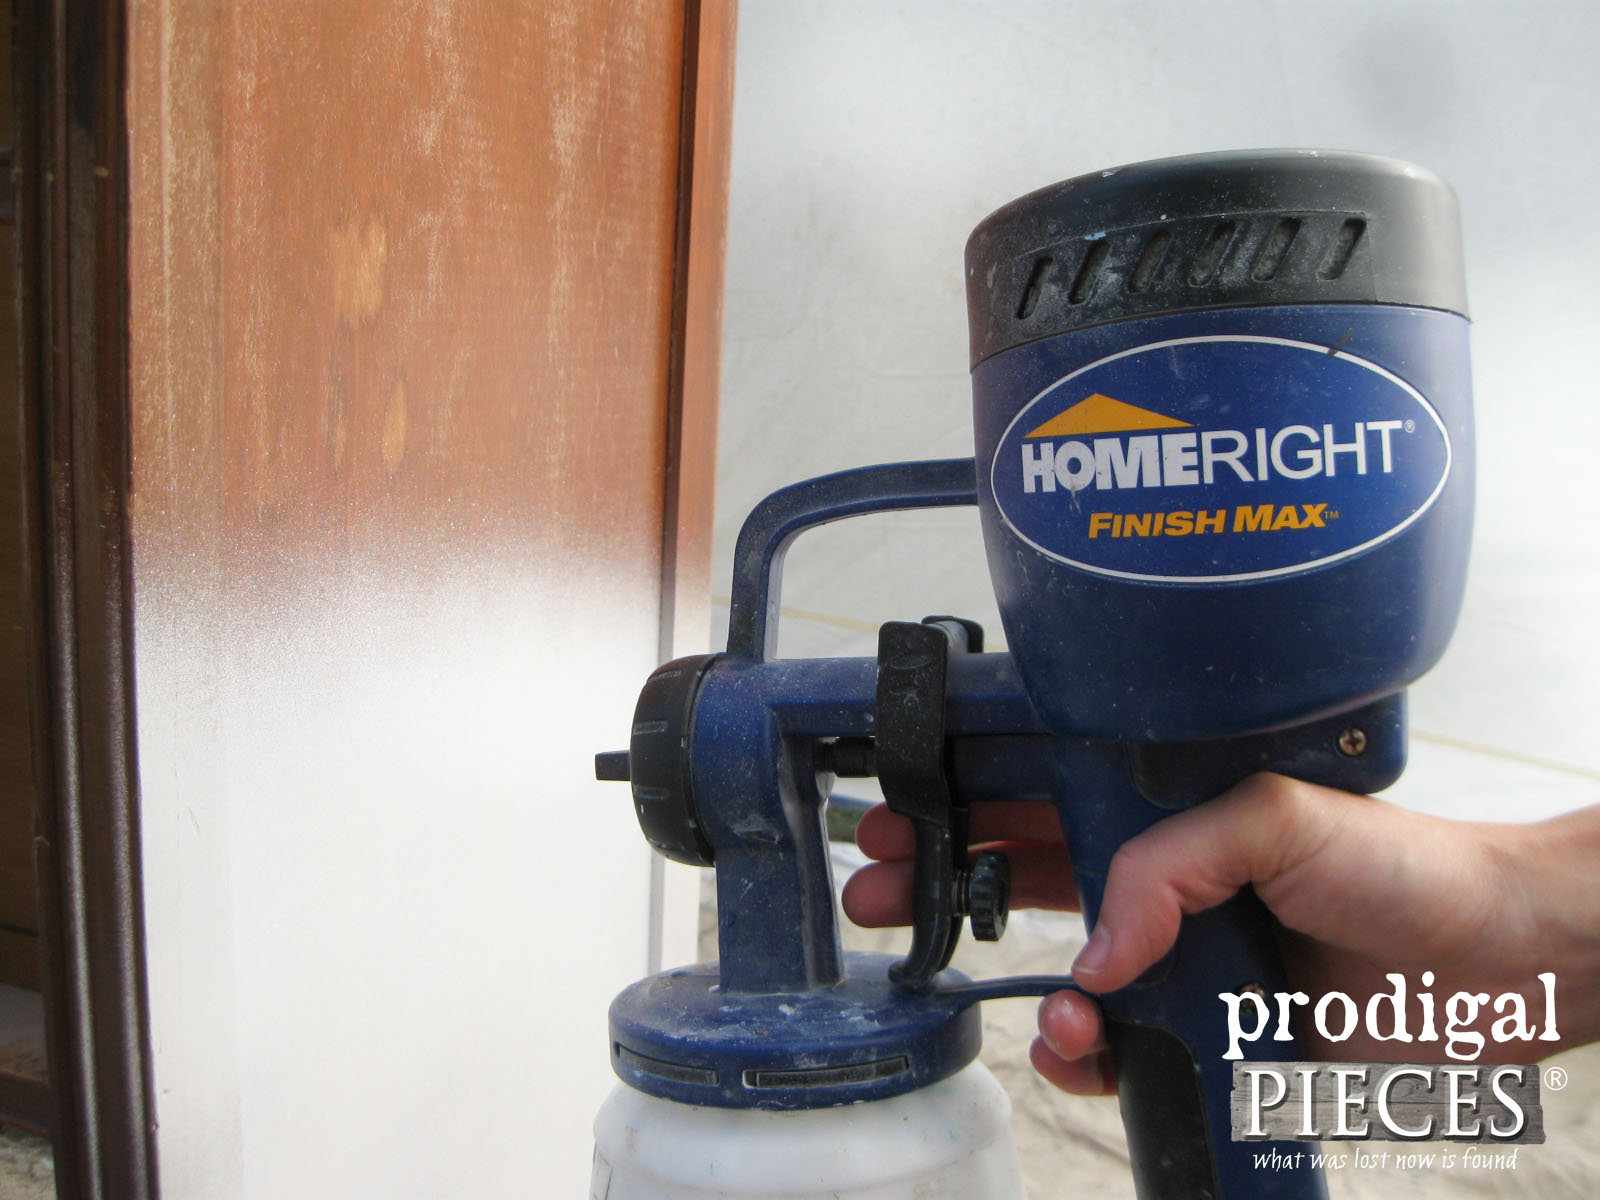 HomeRight Finish Max Paint Sprayer for Furniture Painting | Prodigal Pieces | www.prodigalpieces.com